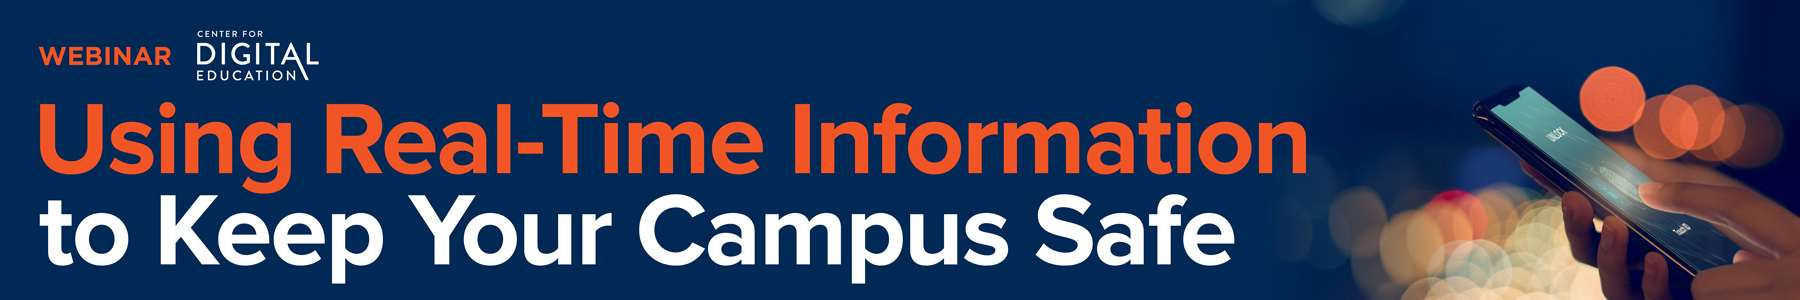 Using Real-Time Information to Keep Your Campus Safe